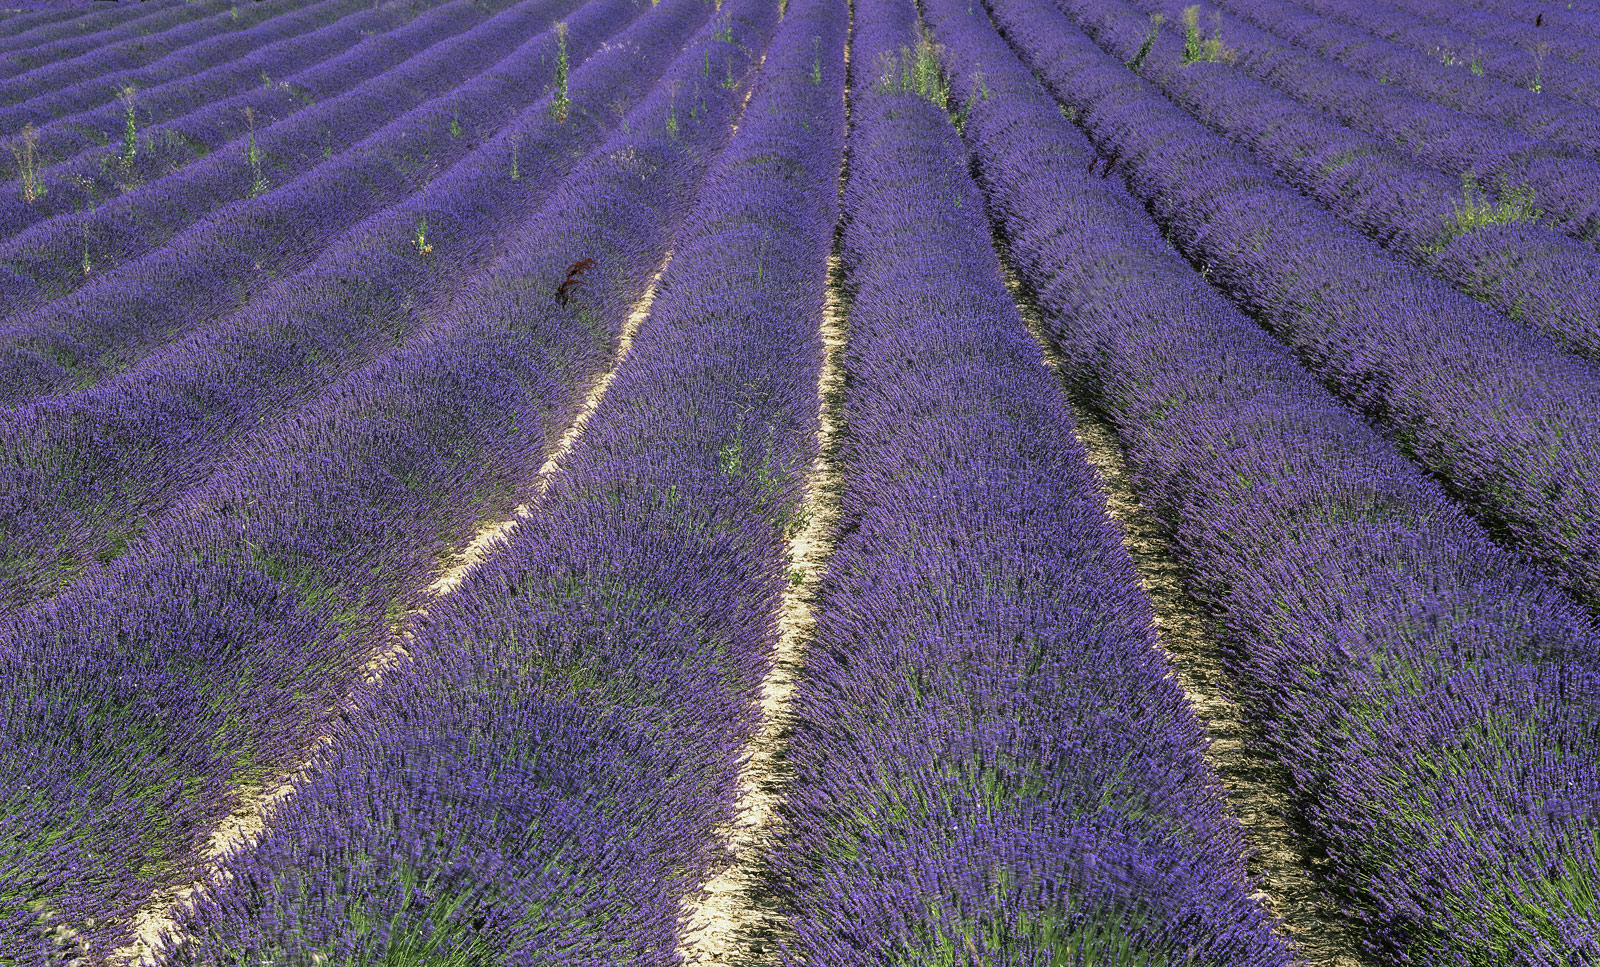 Scented rows of purple flowering lavender viewed from above stretch off into the distance in neat diagonal lines interrupted...